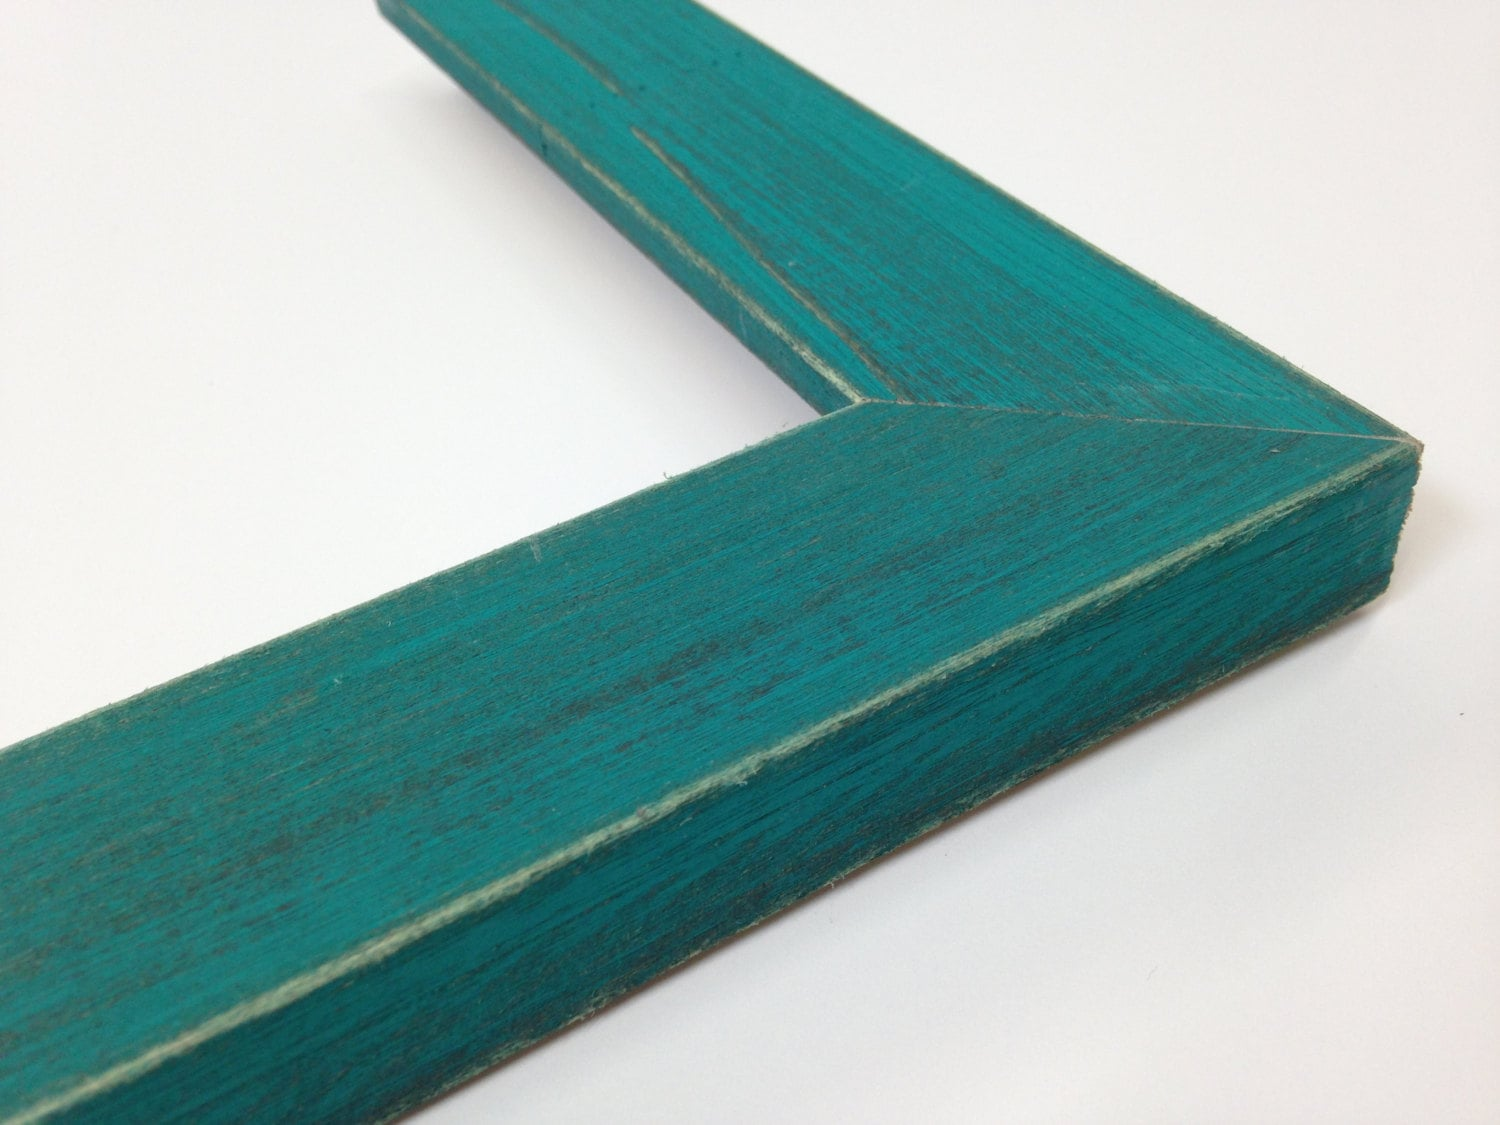 TURQUOISE / TEAL Rustic Wood Picture Frame, Reclaimed Distressed ...